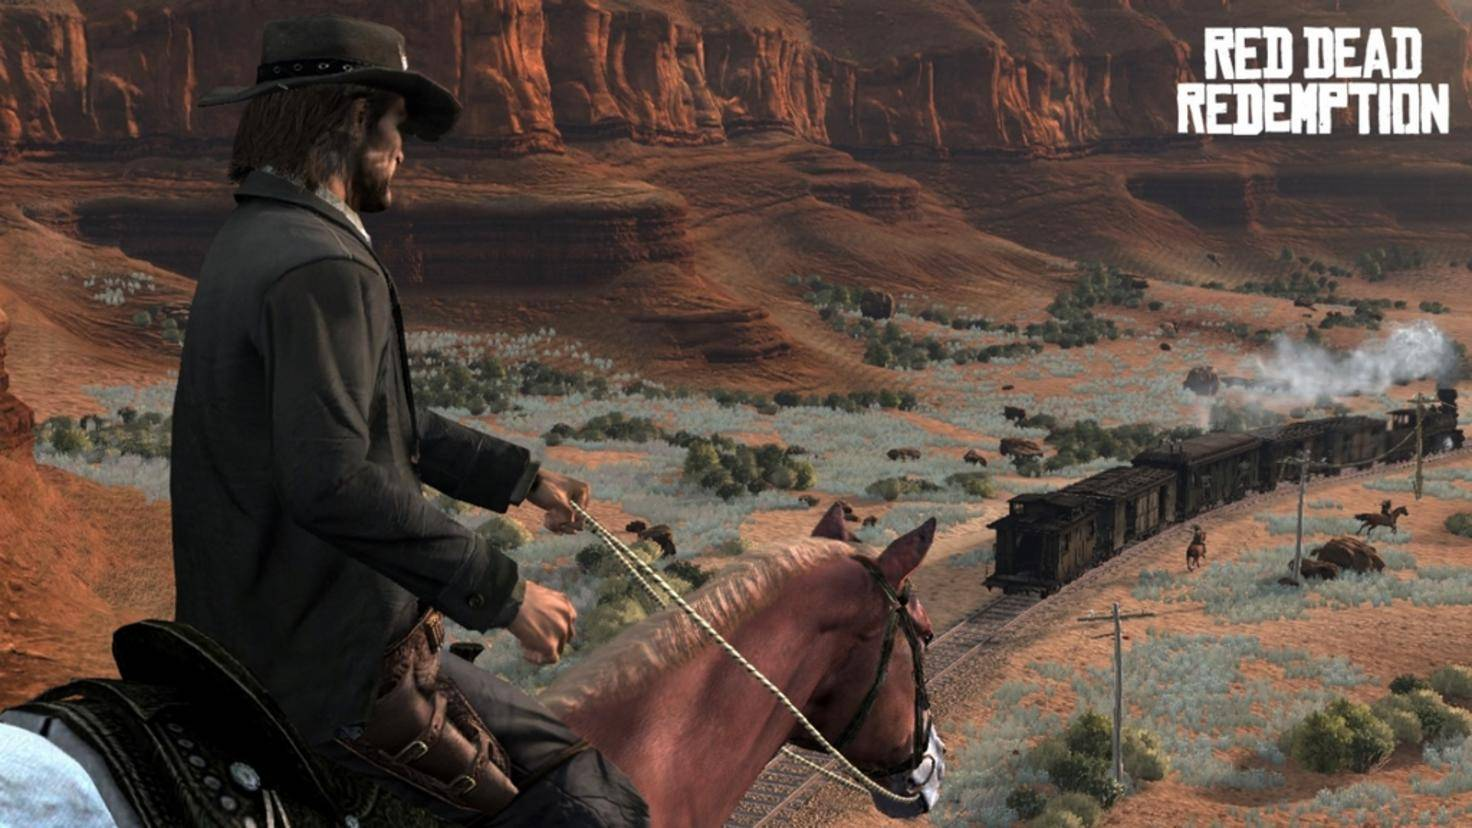 Red-Dead-Redemption-05